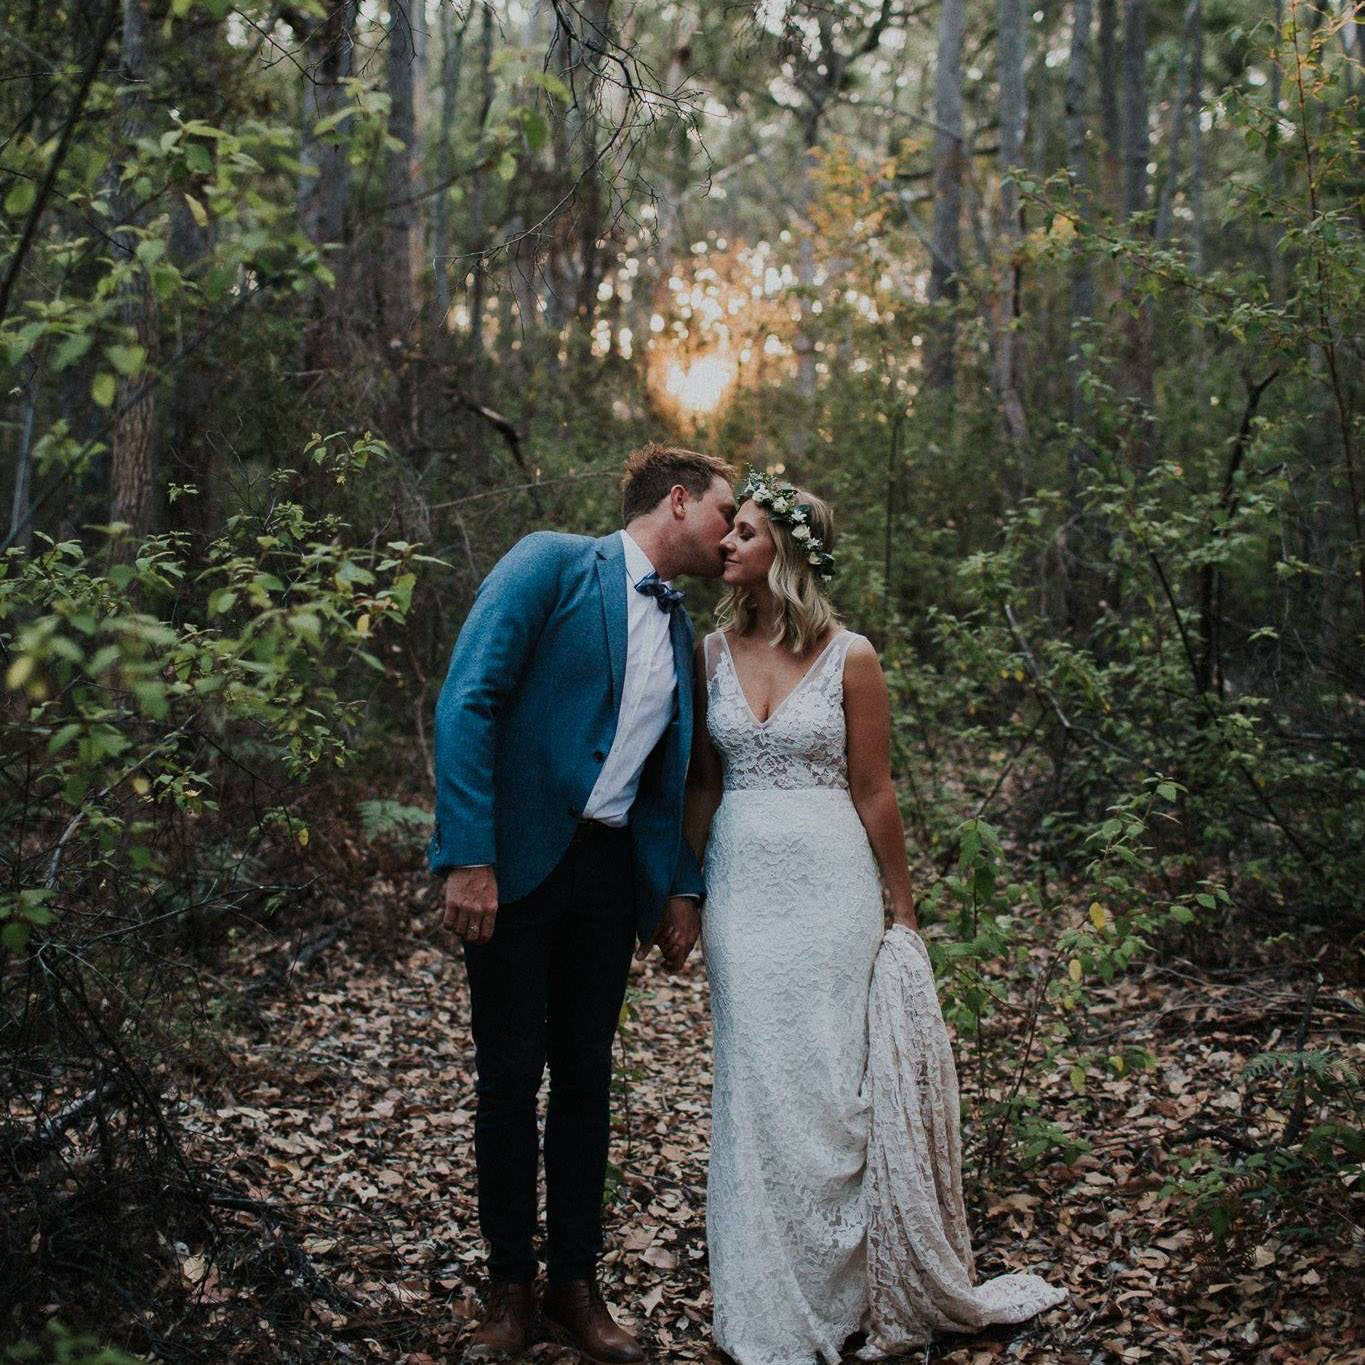 Lauren and Trent on their wedding day — photo by Rae Marie Photography